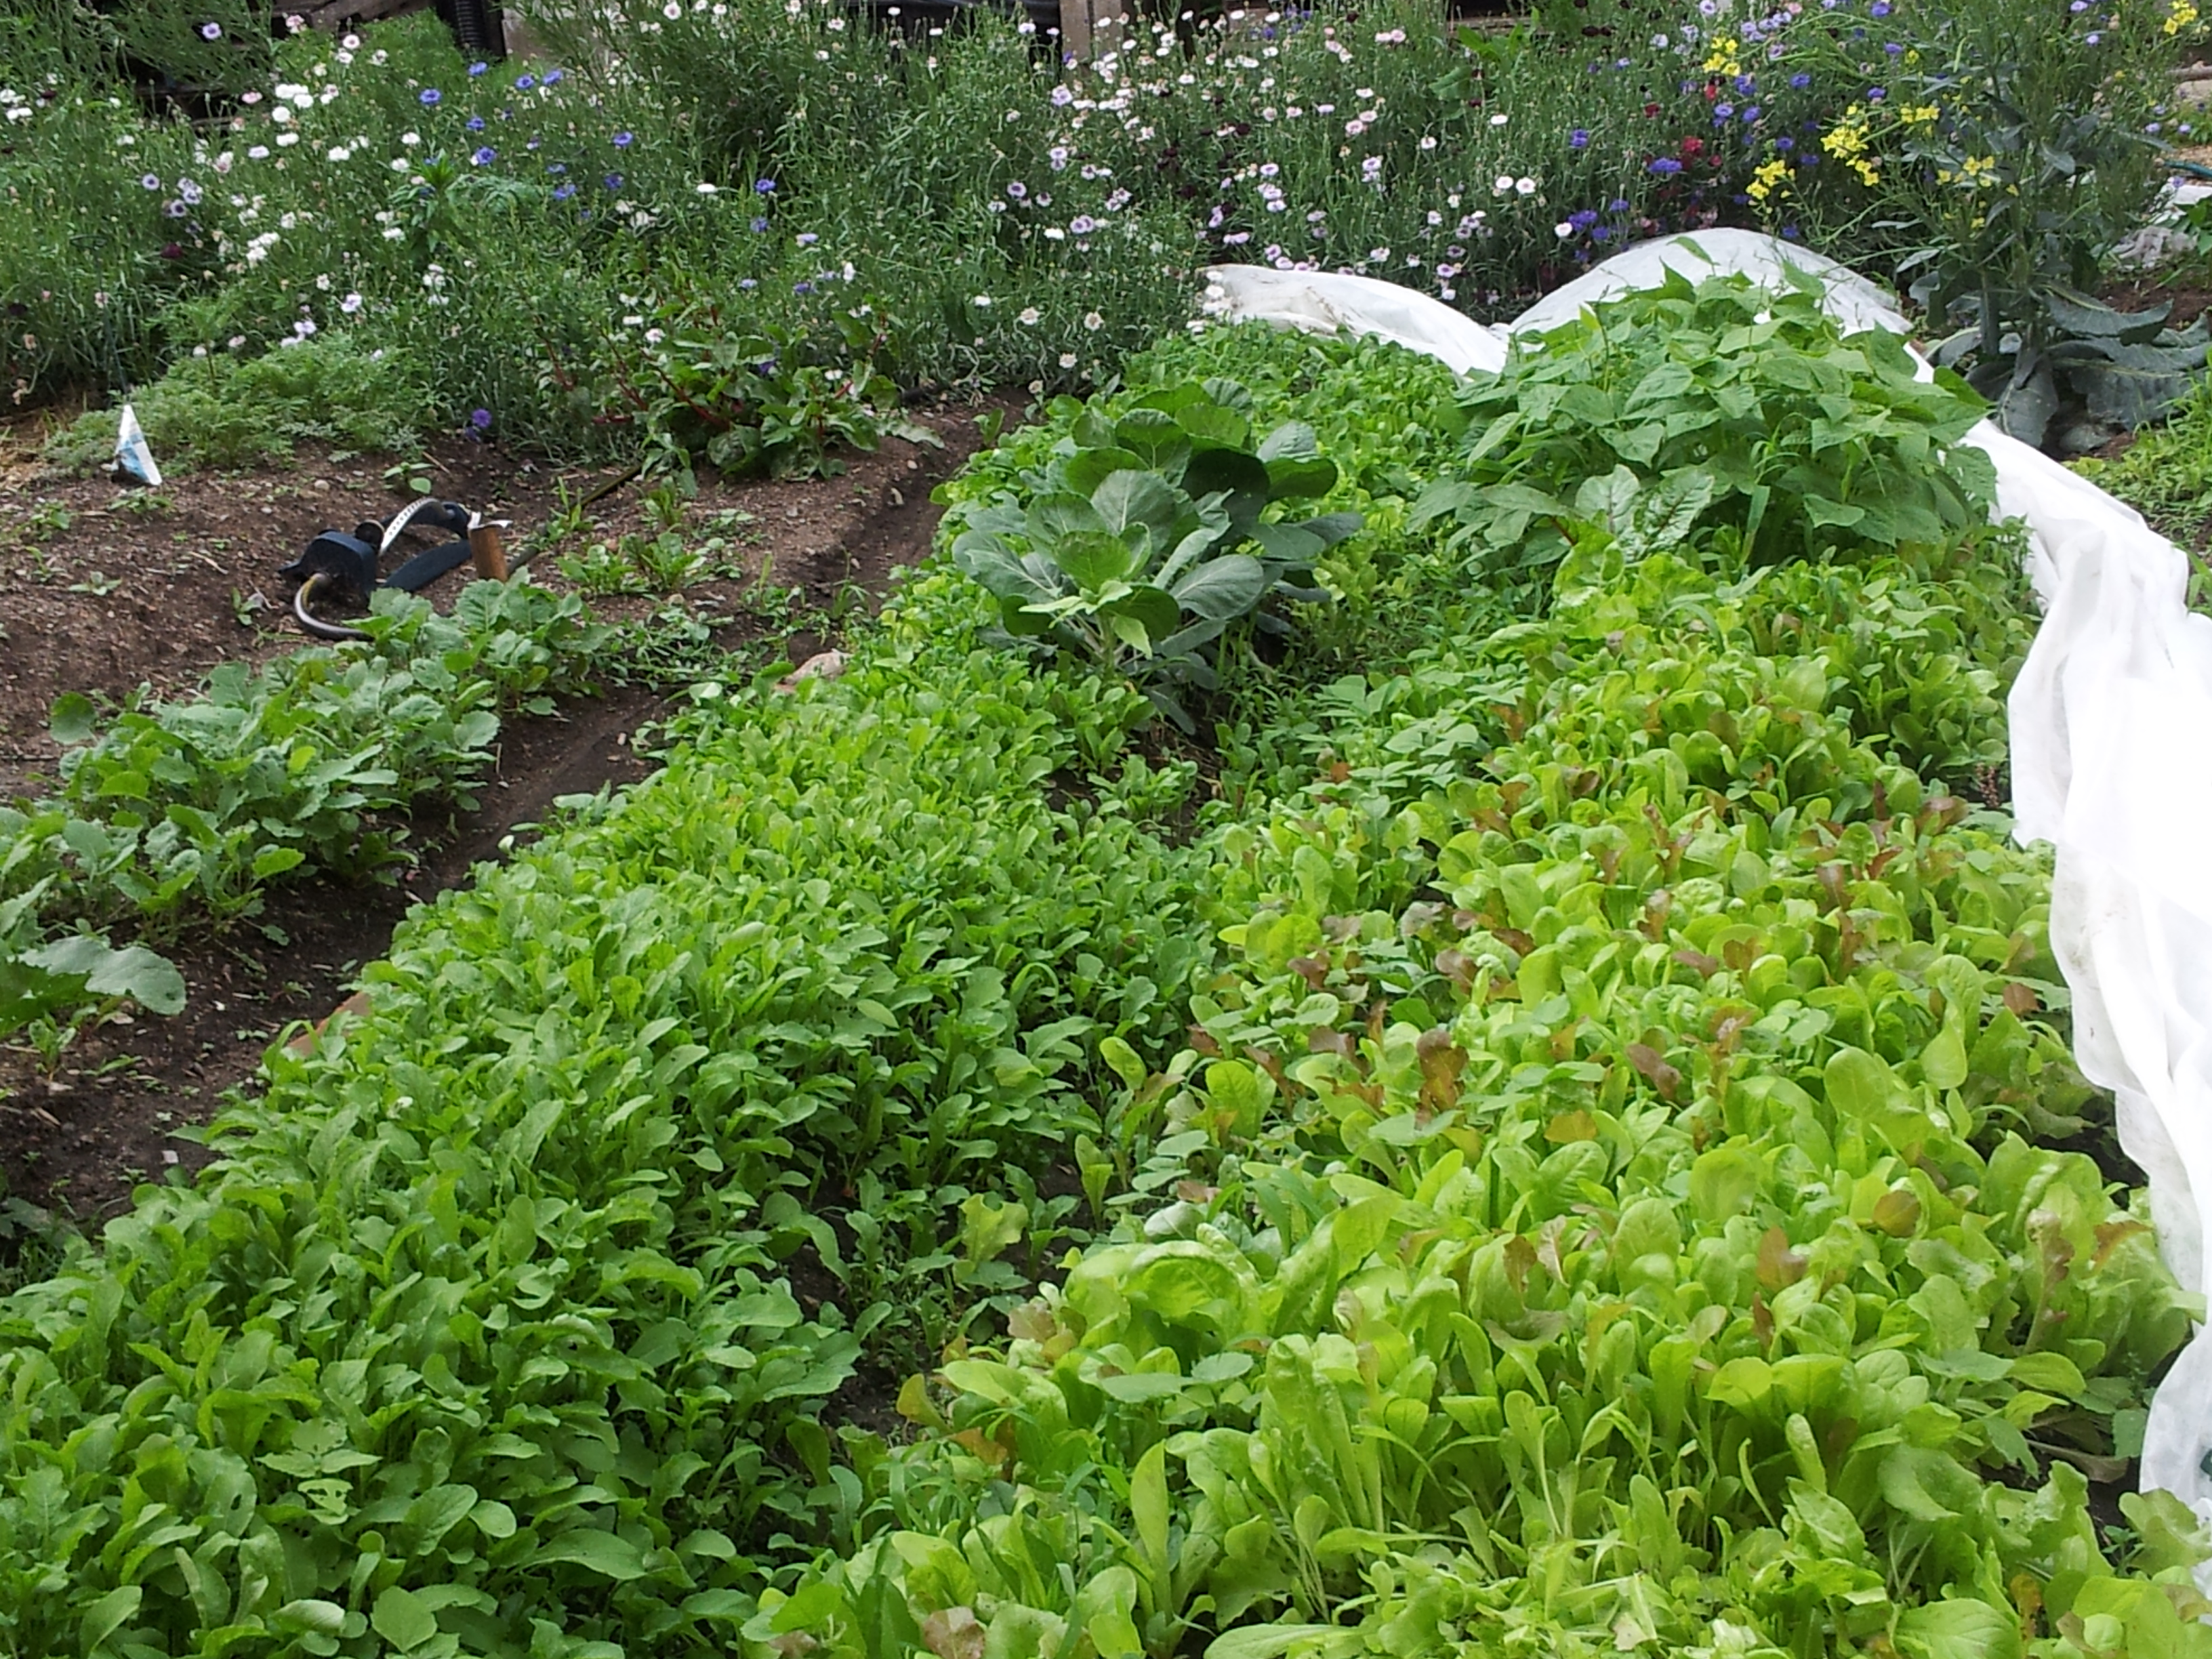 Harvesting Lettuce Beds After Scatter Planting